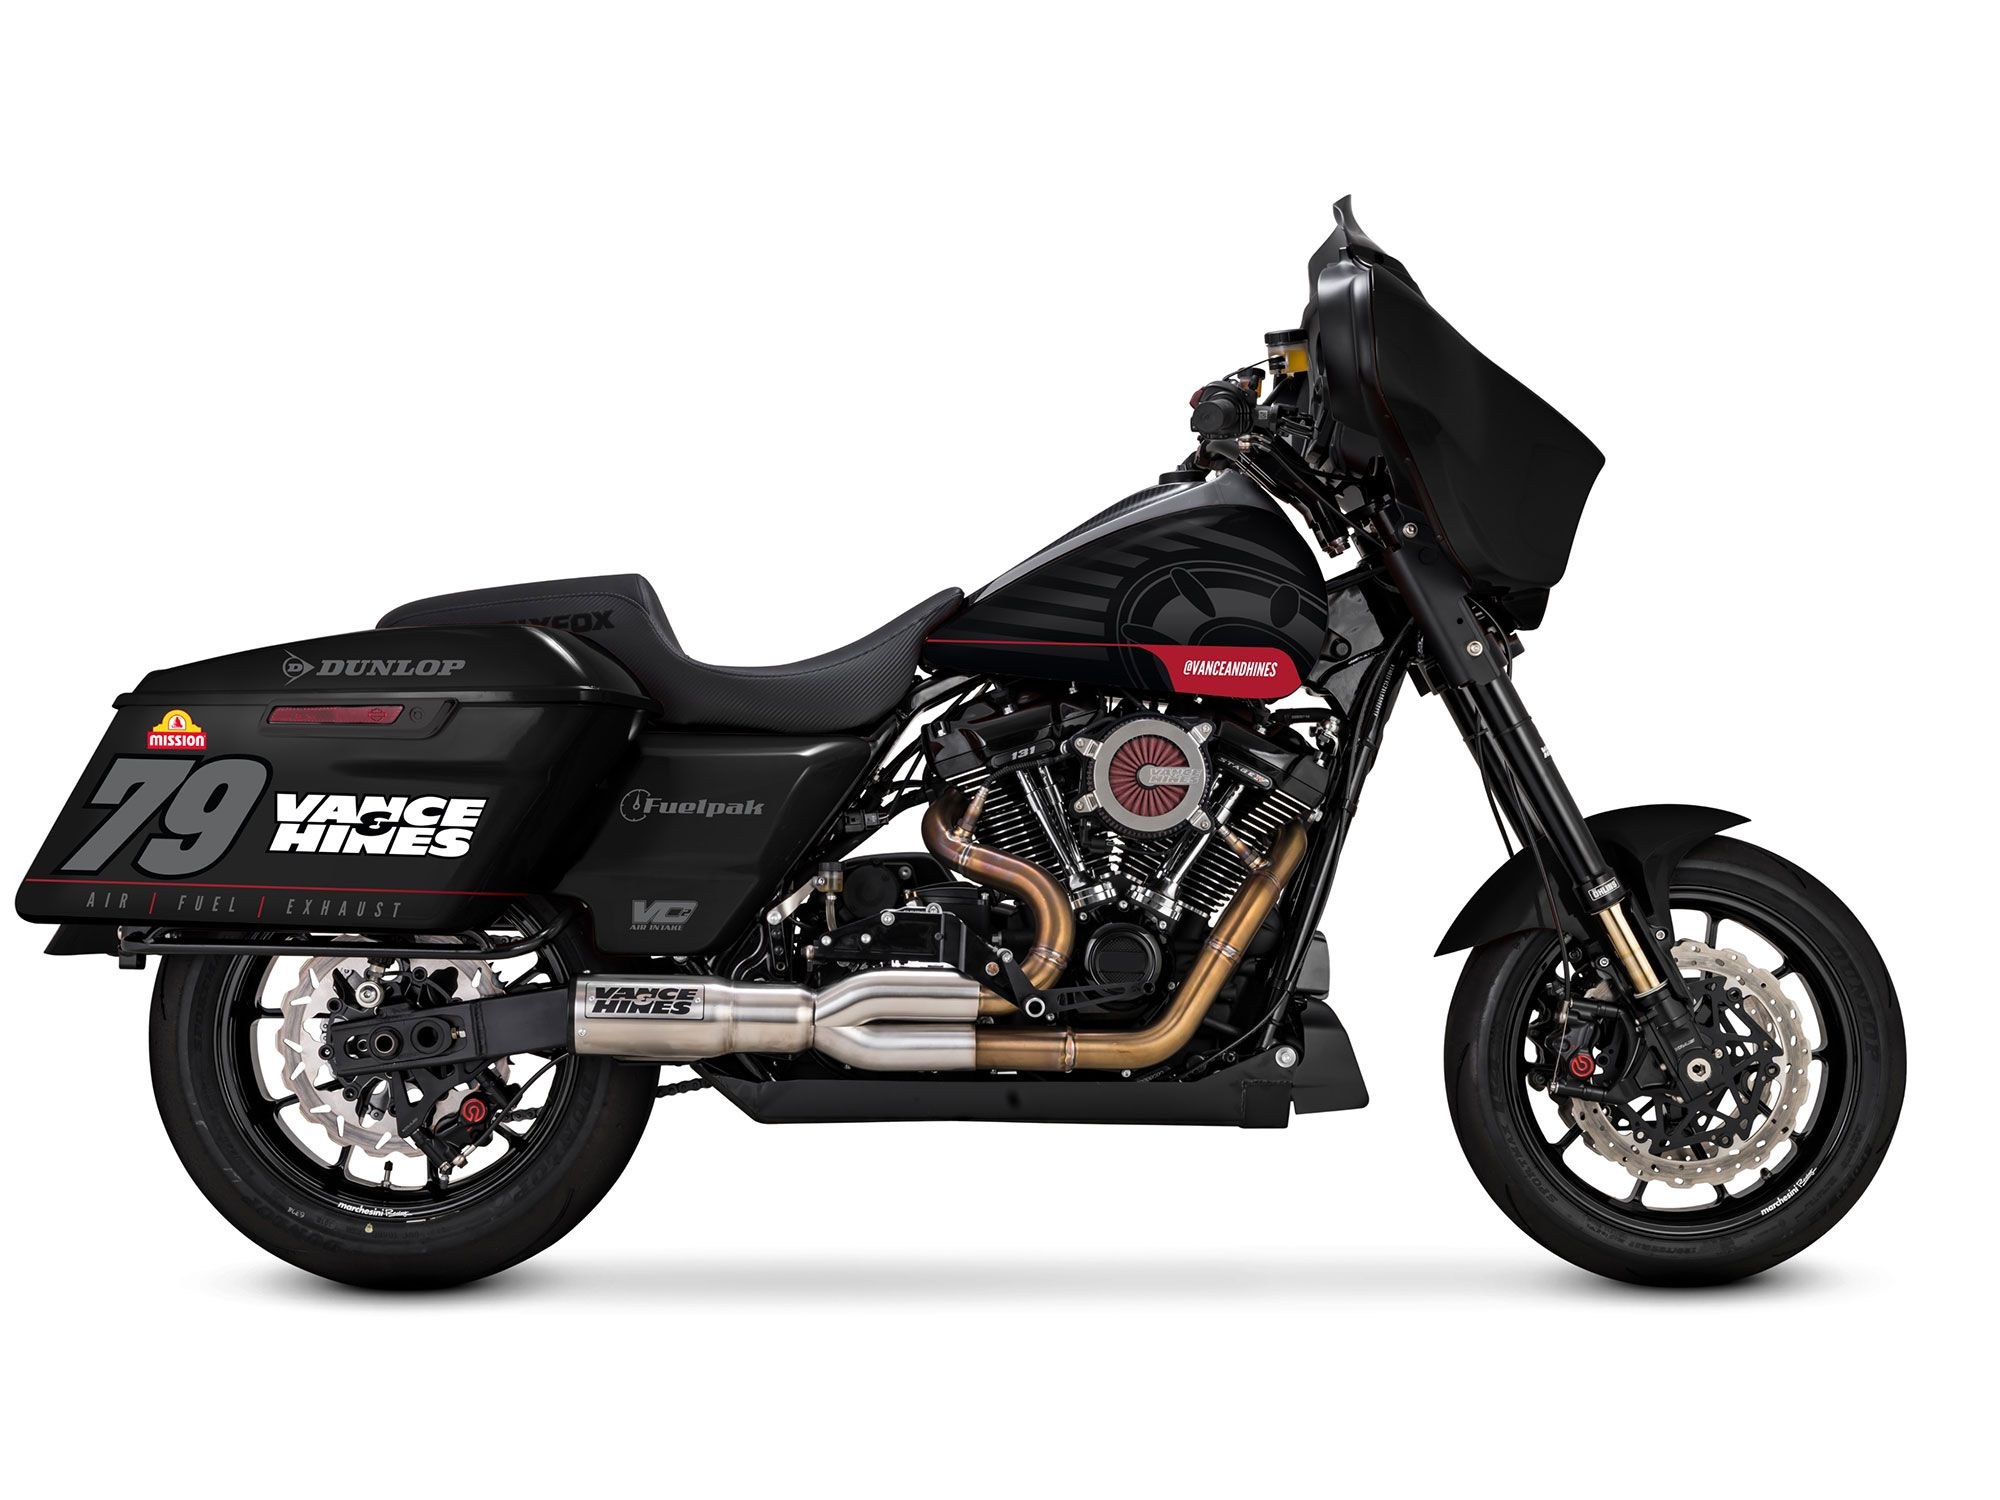 Vance & Hines Is Back In King of the Baggers